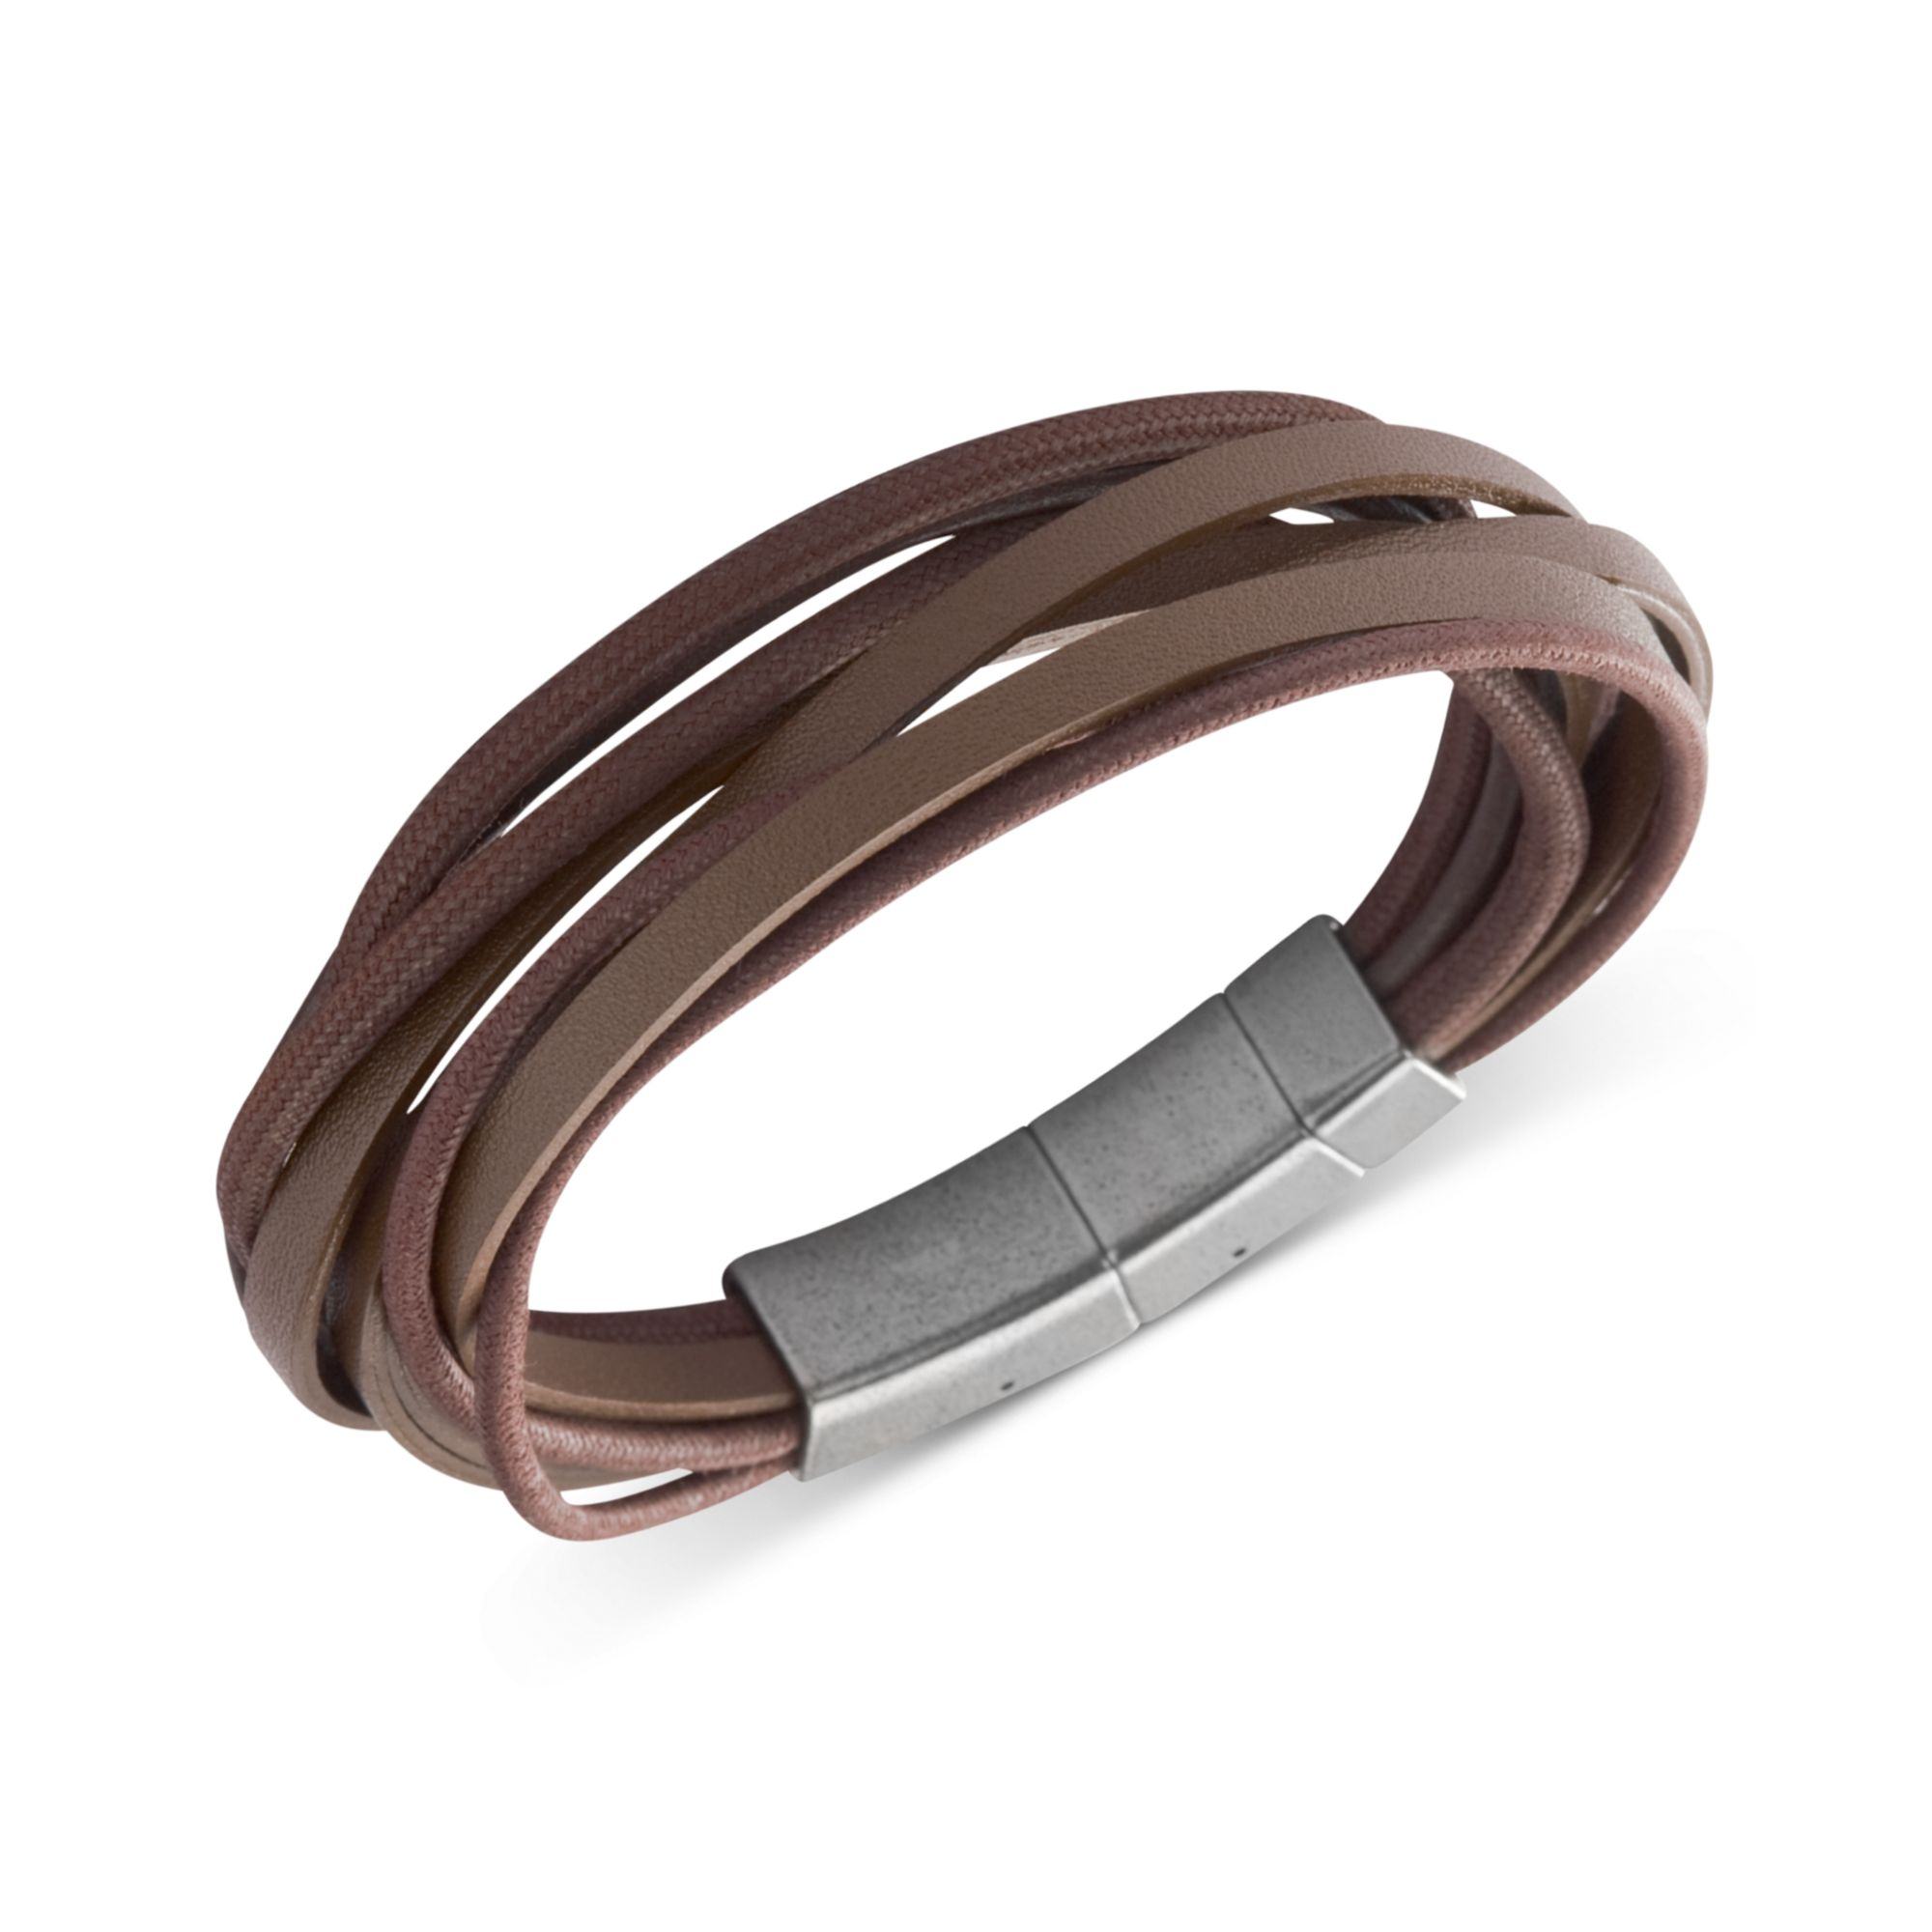 Stainless Steel Brown Leather Multistrand Wrap Bracelet